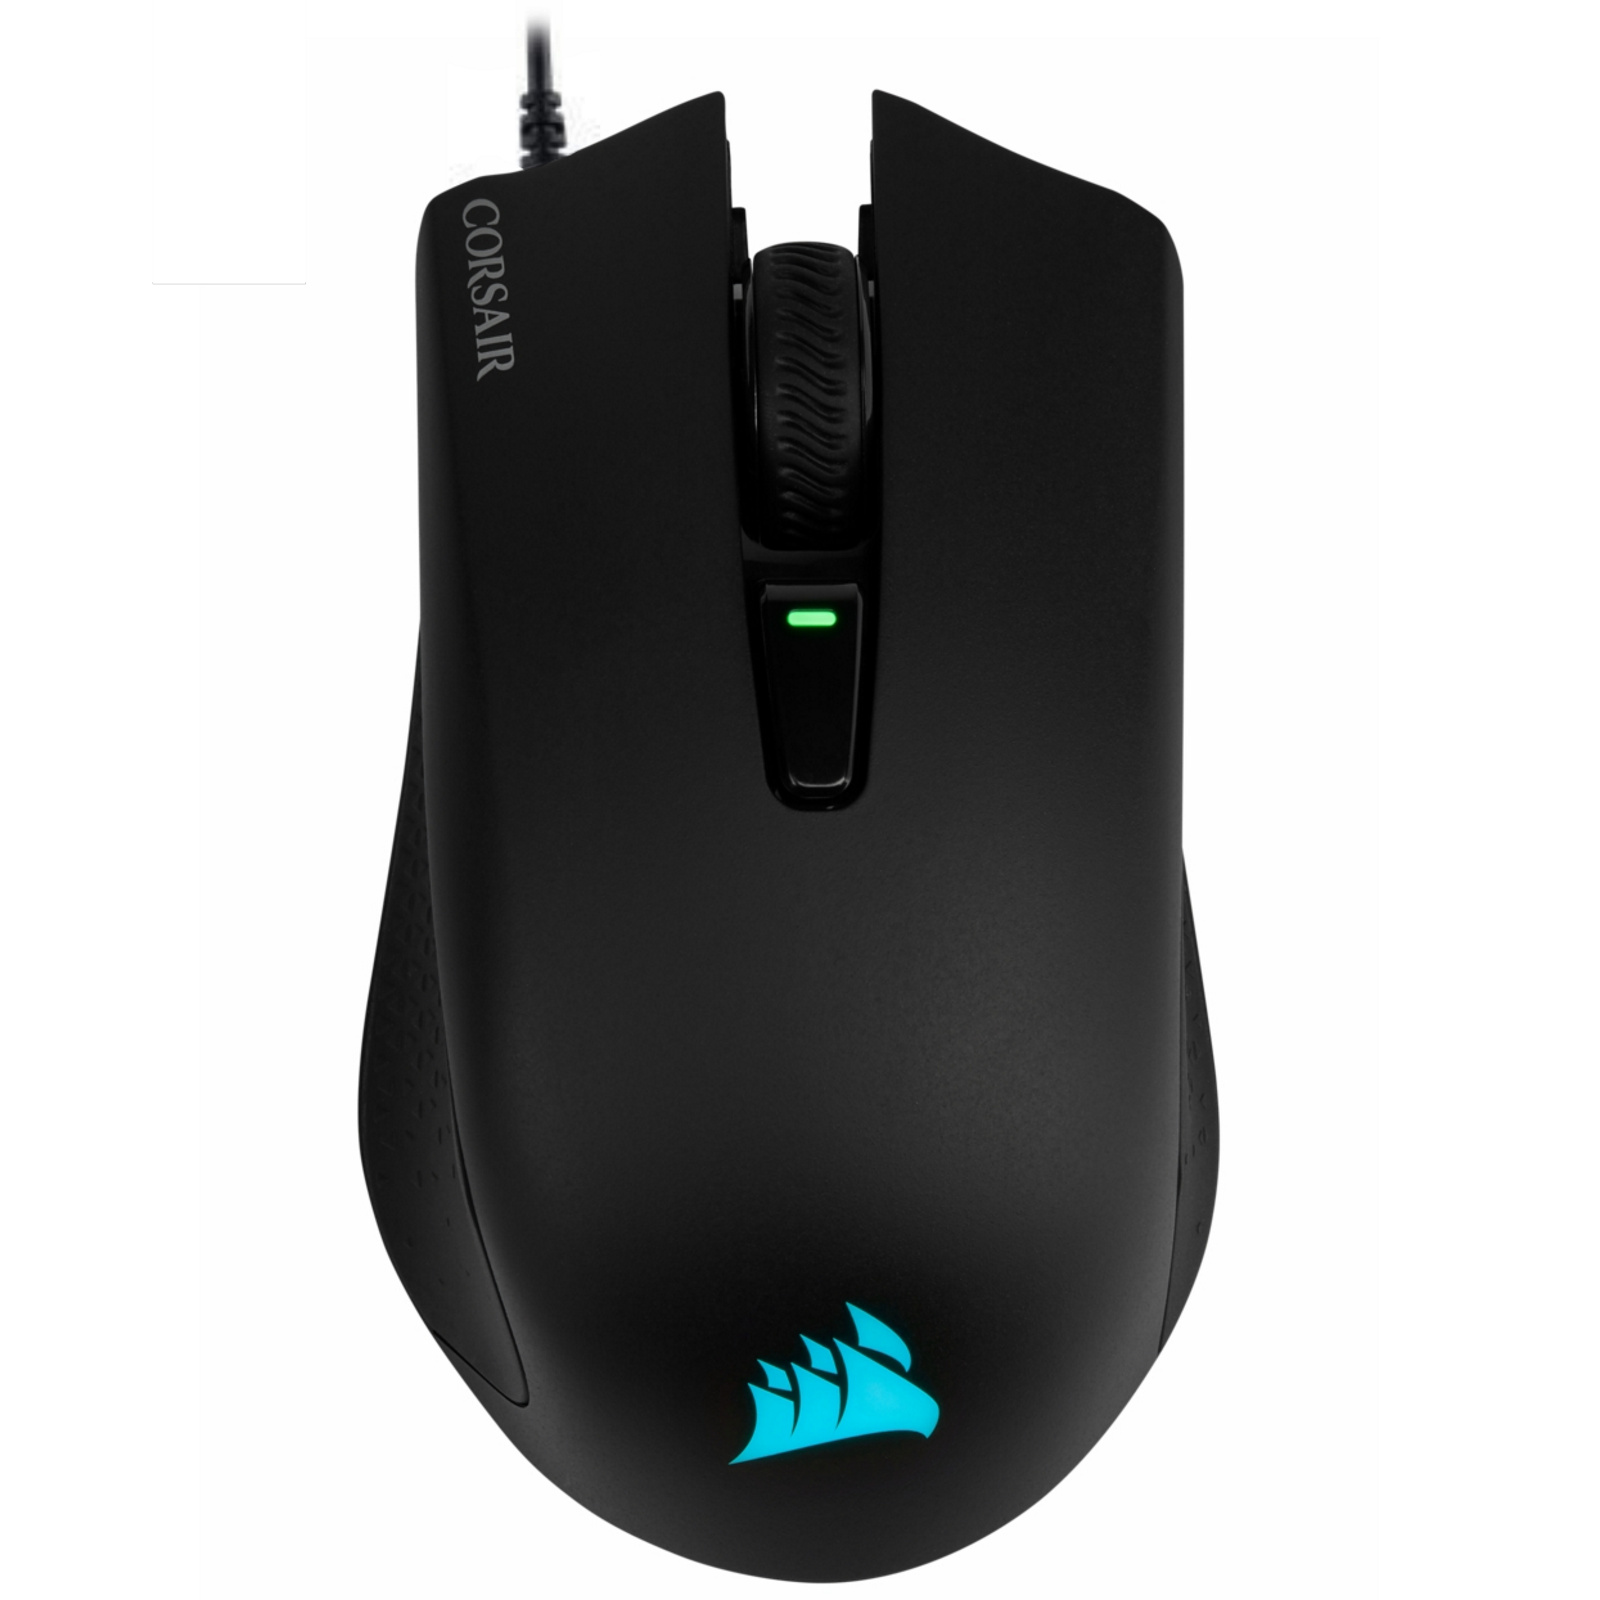 9e07a0b53c4 Buy the Corsair Harpoon RGB Pro FPS MOBA Gaming Mouse ( CH-9301111 ...